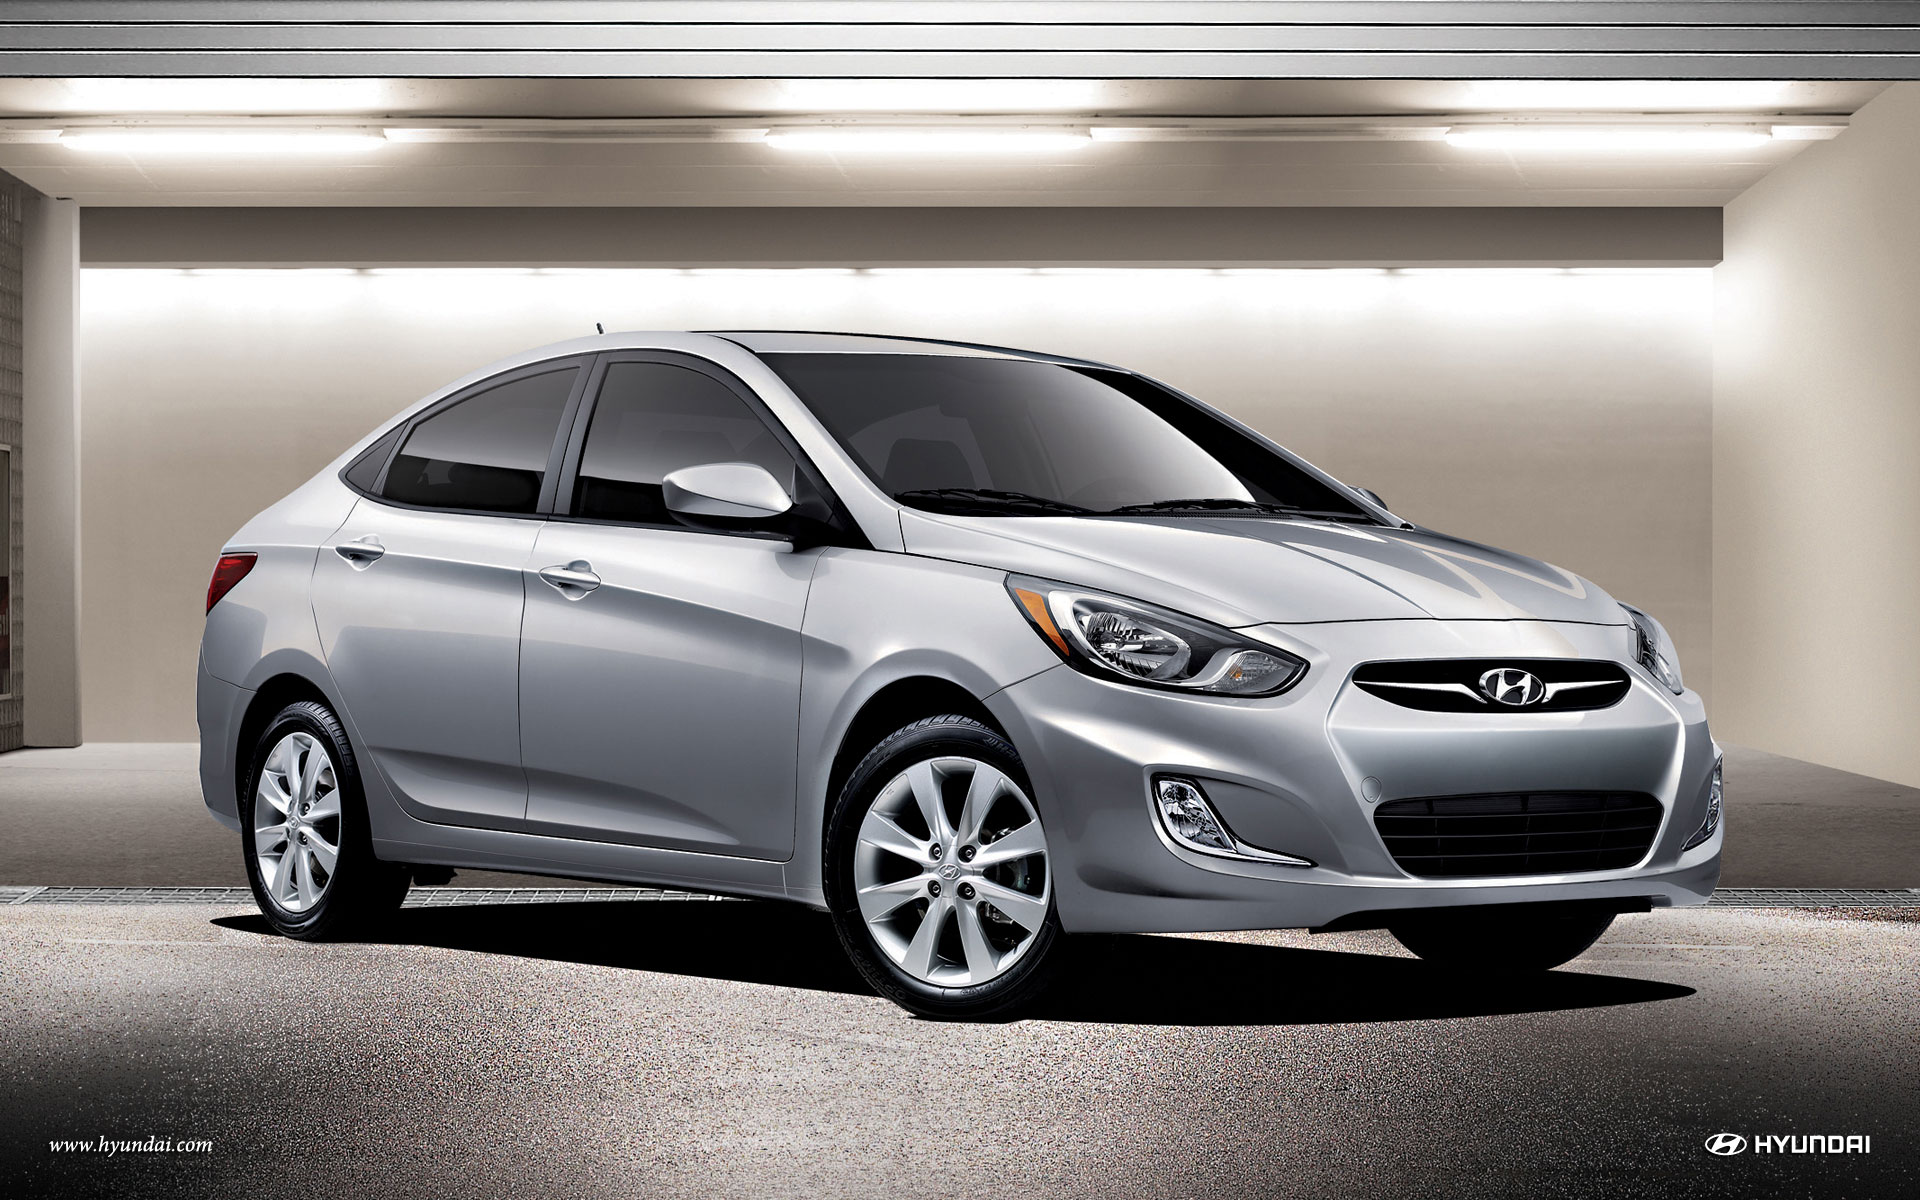 Las Vegas Used Cars >> 2013 Hyundai Accent Review, Ratings, Specs, Prices, and Photos - The Car Connection